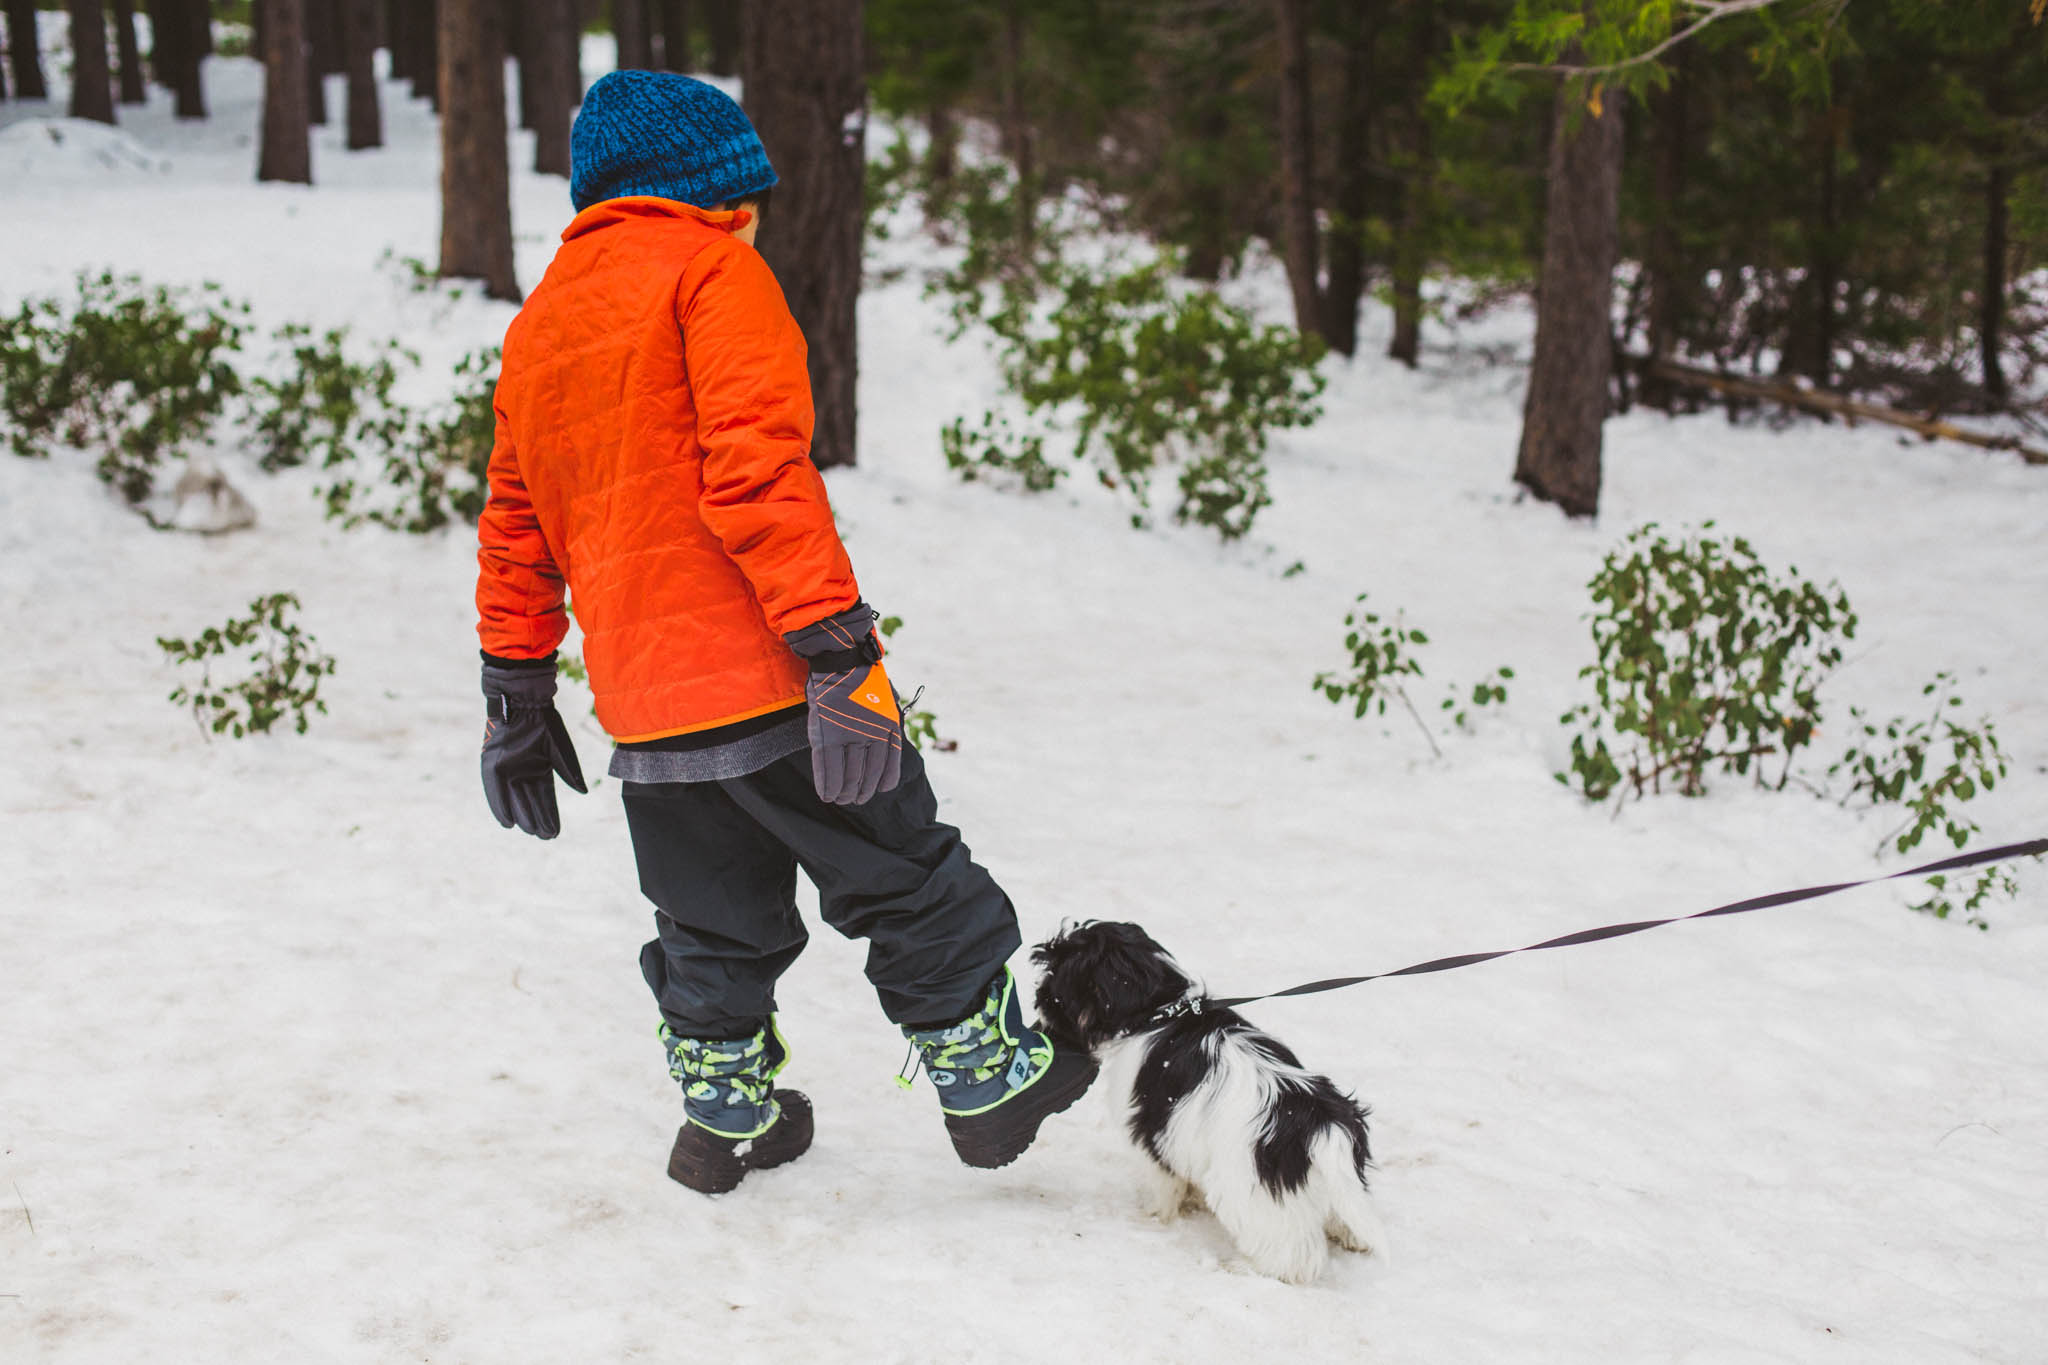 Children and puppy play and sled in the Sierra snow